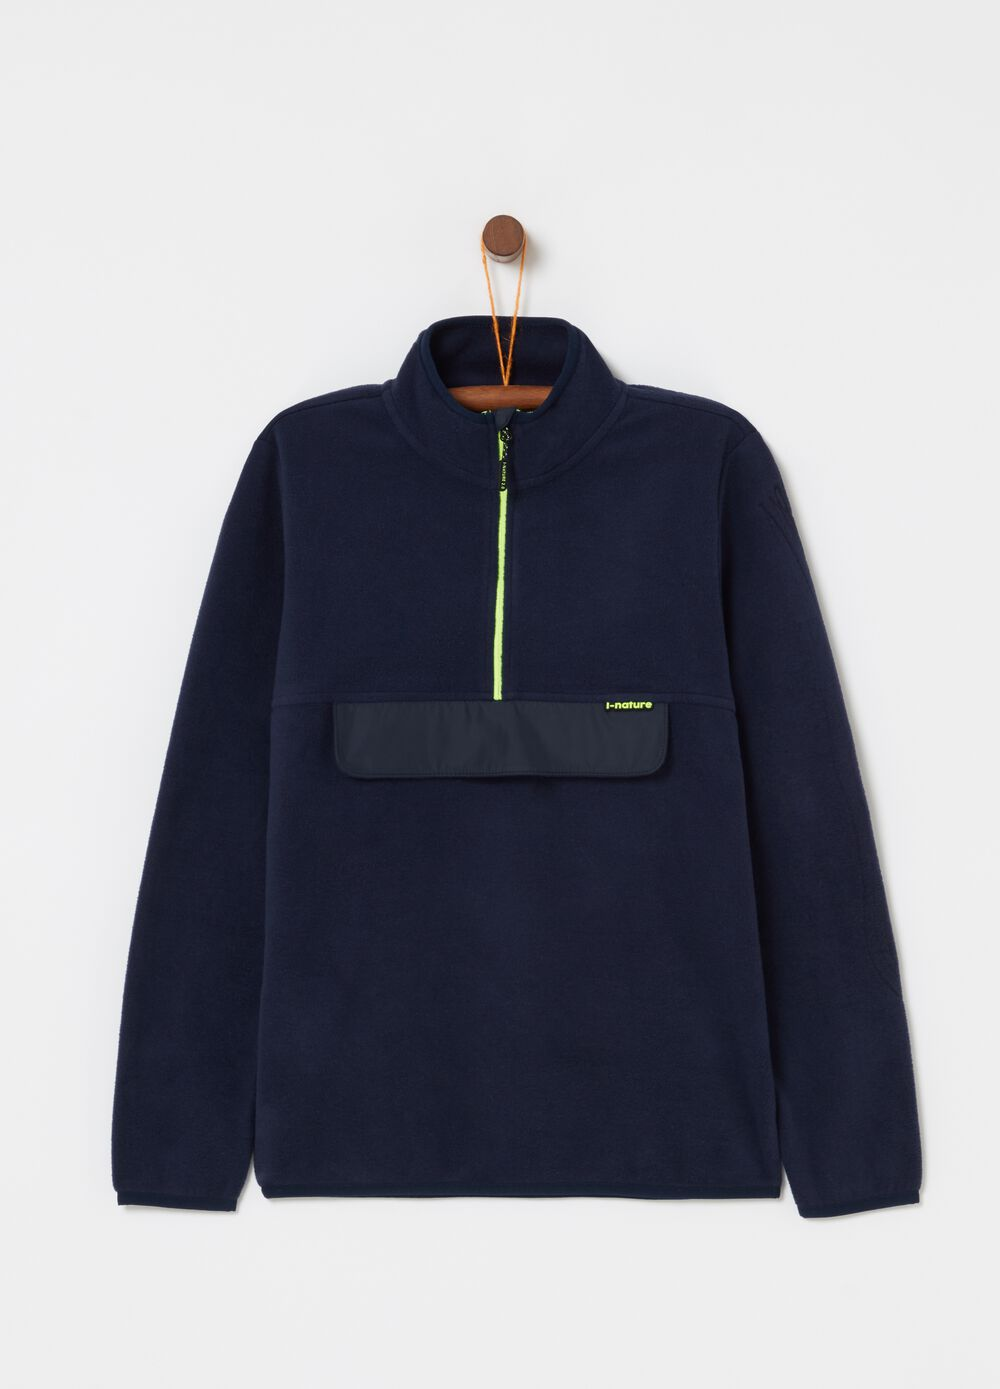 Sustainable fleece sweatshirt with false pocket